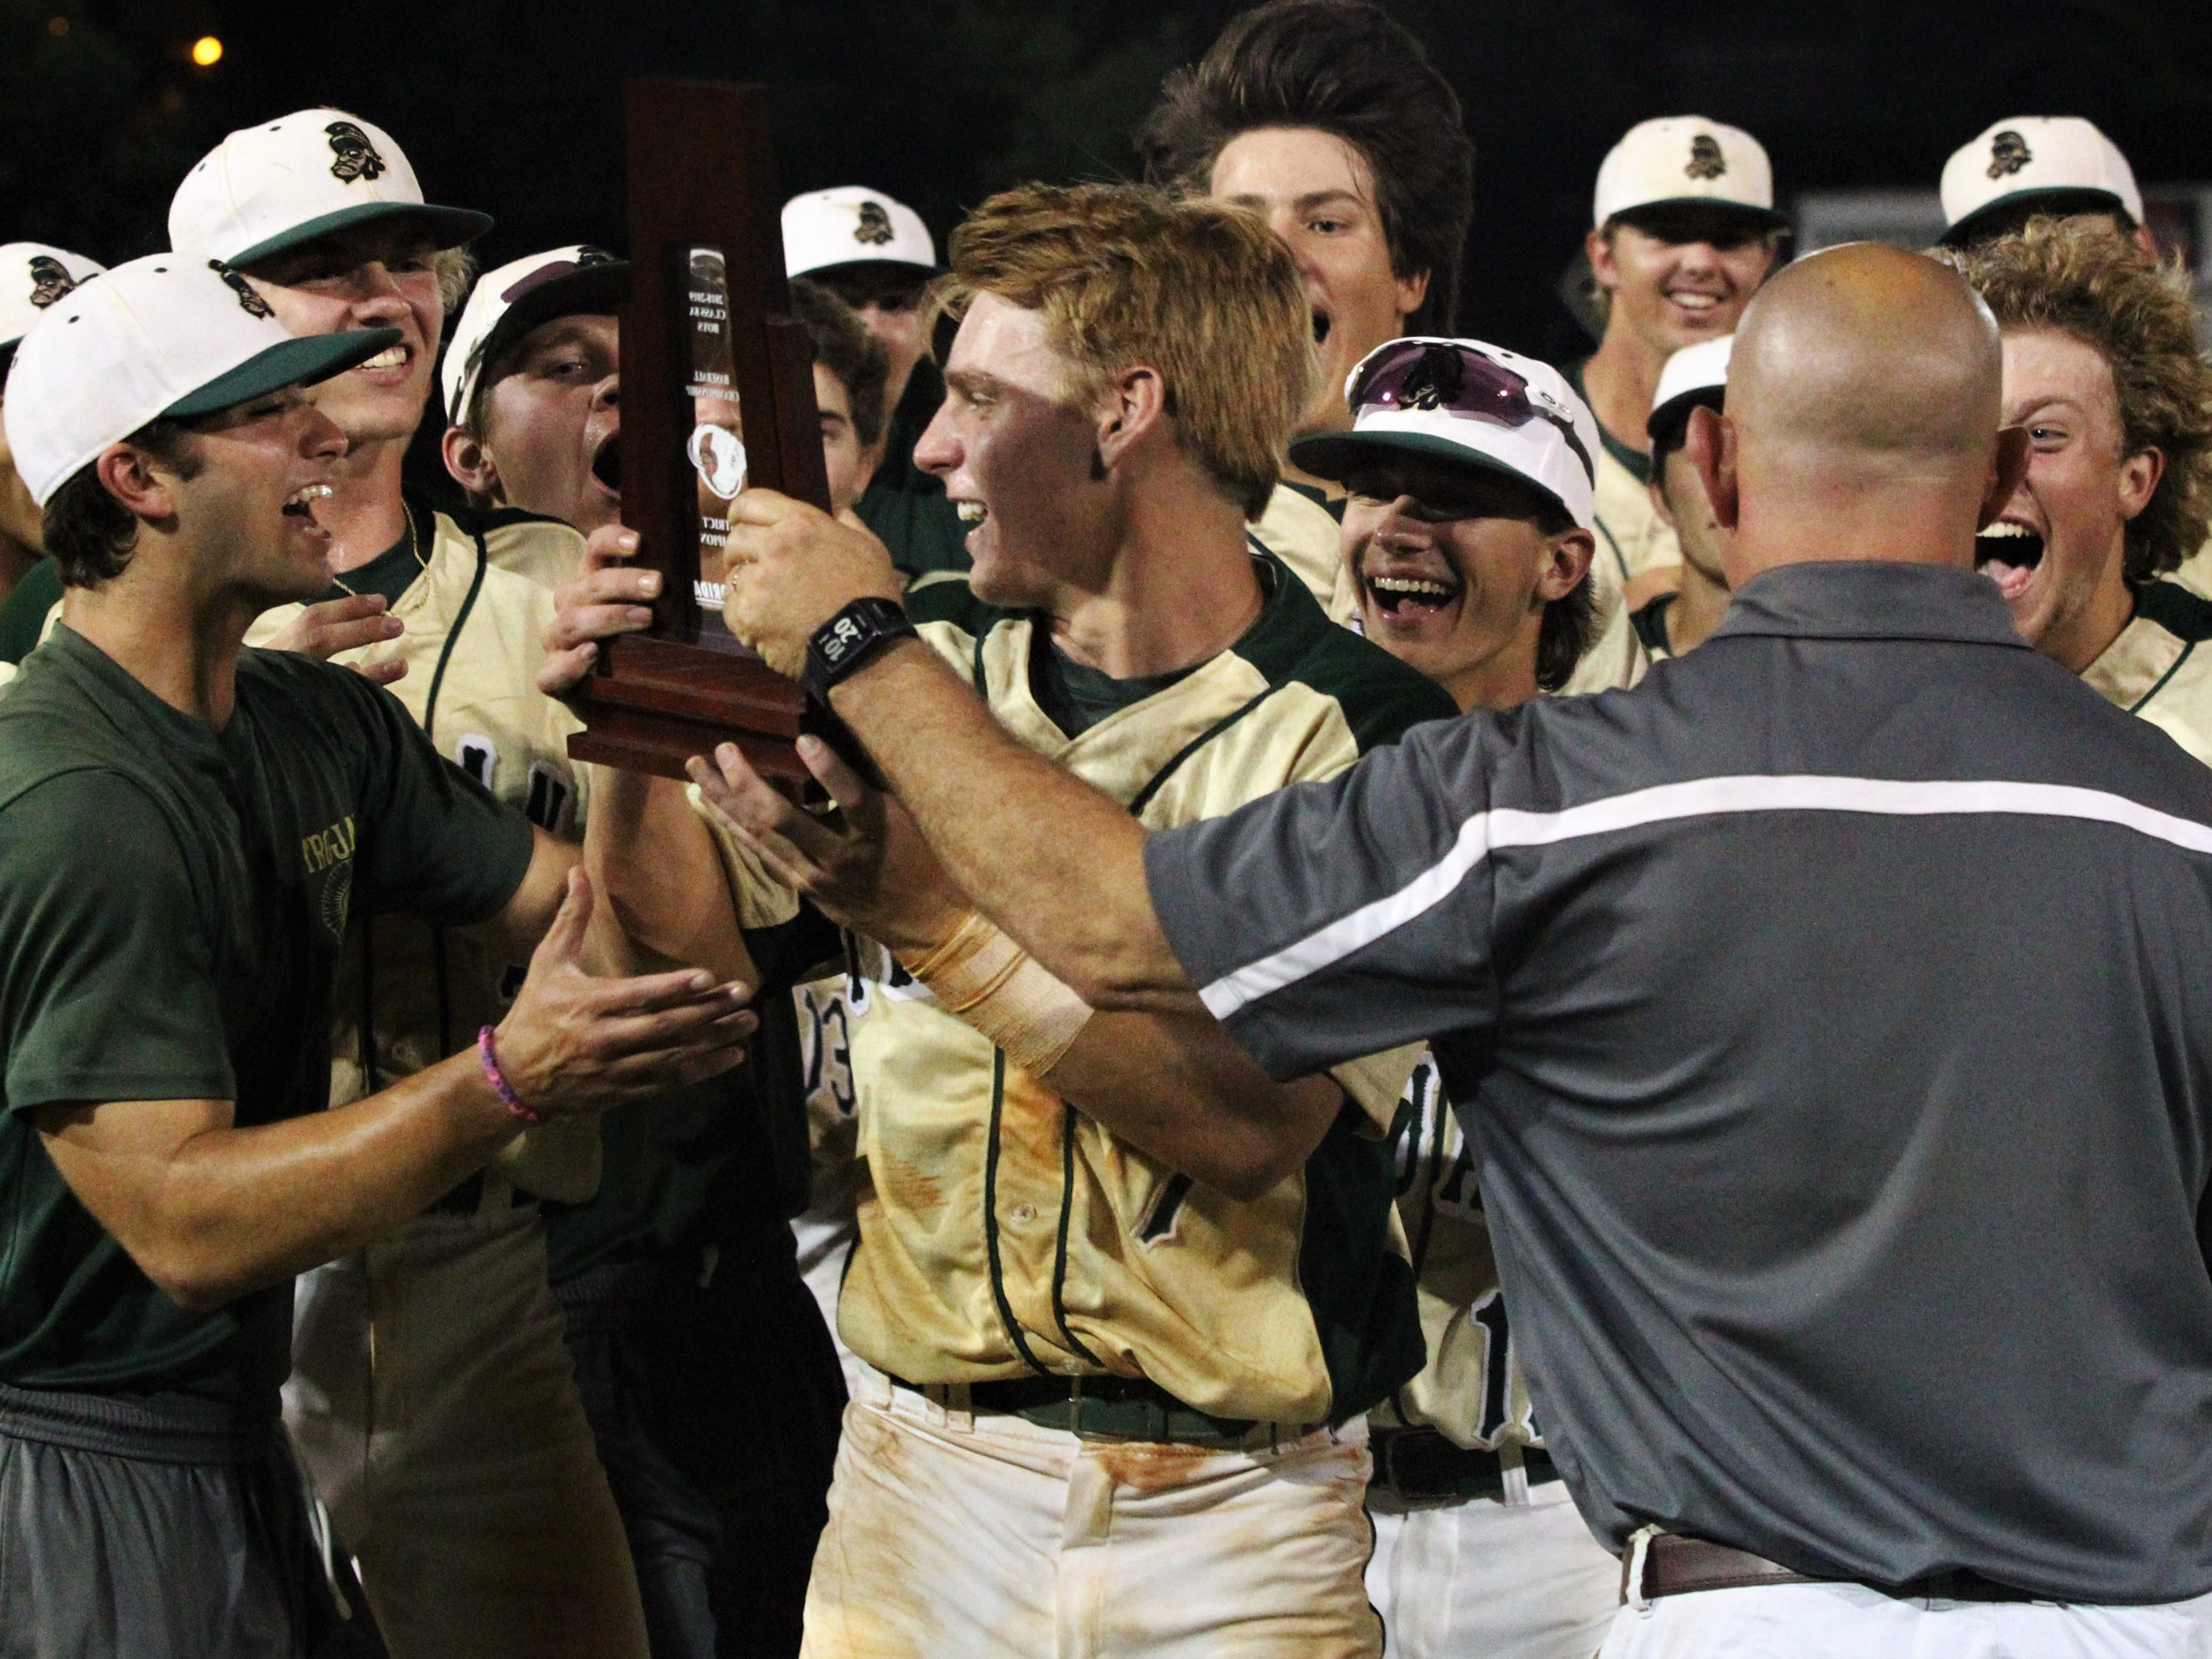 Justin Bragdon gets handed the district championship trophy following his walk-off hit as Lincoln baseball beat Chiles 5-4  in 10 innings during a District 2-8A championship game on Thursday, May 9, 2019.